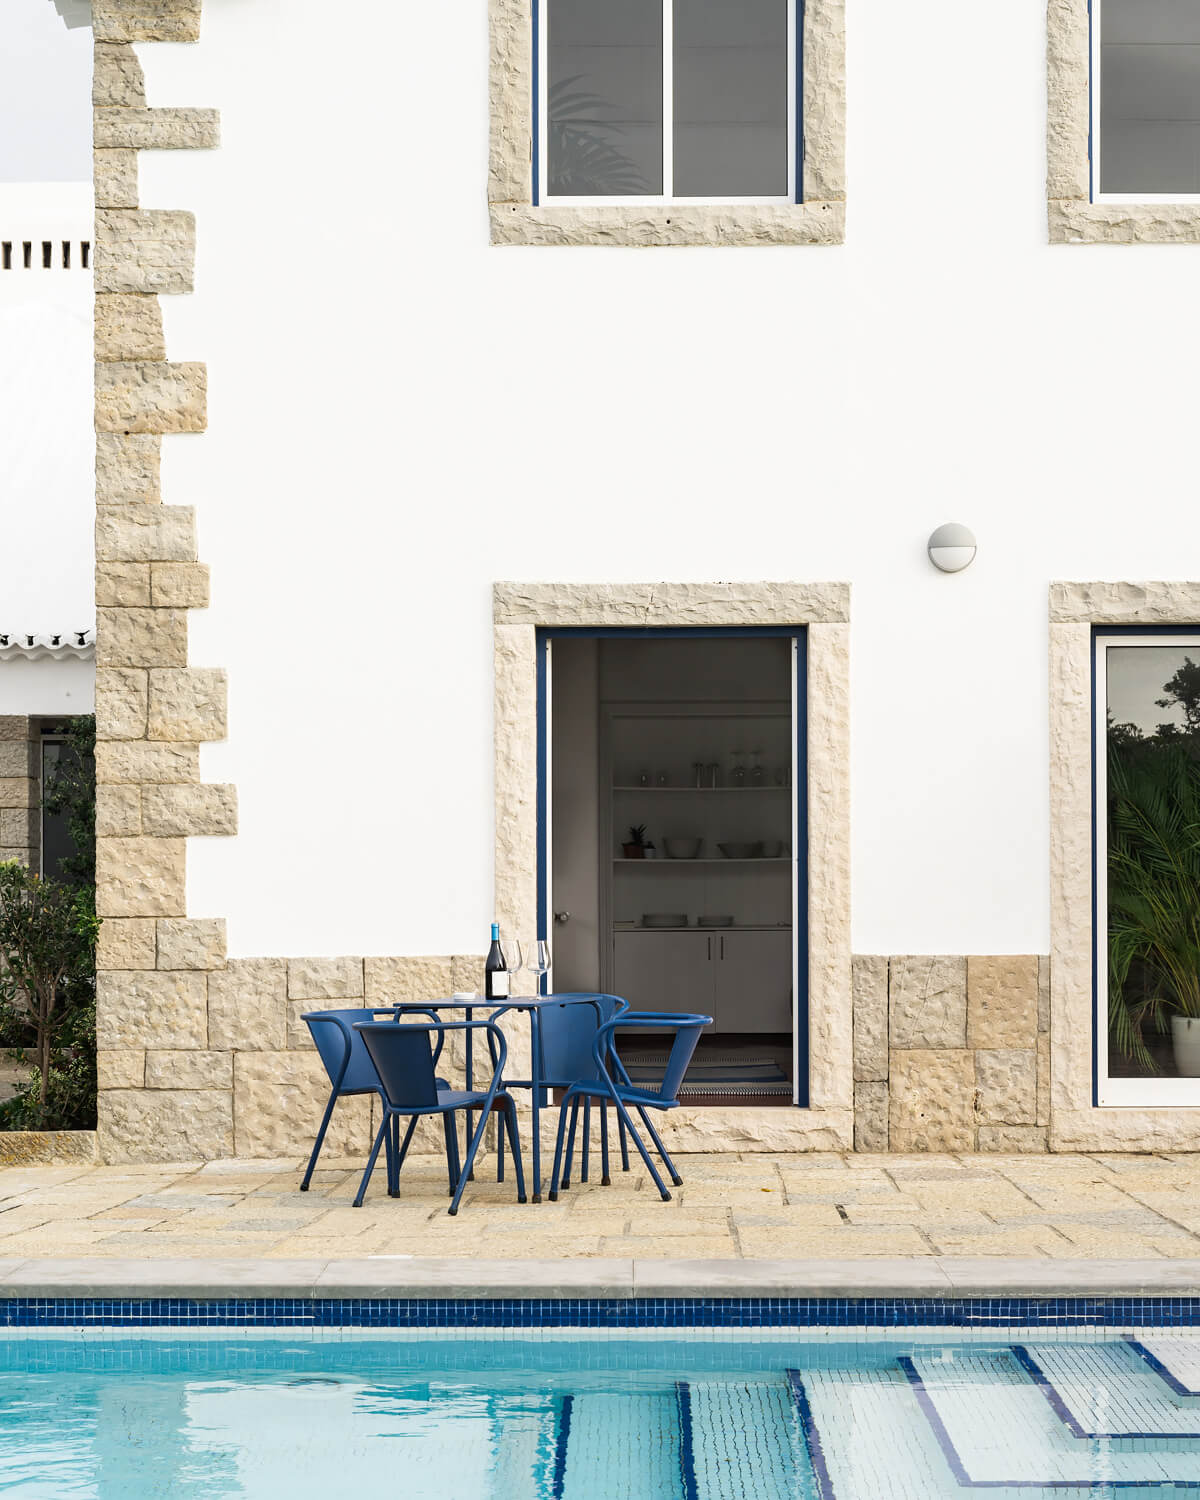 Outpost - South Wing, Colares, Portugal |